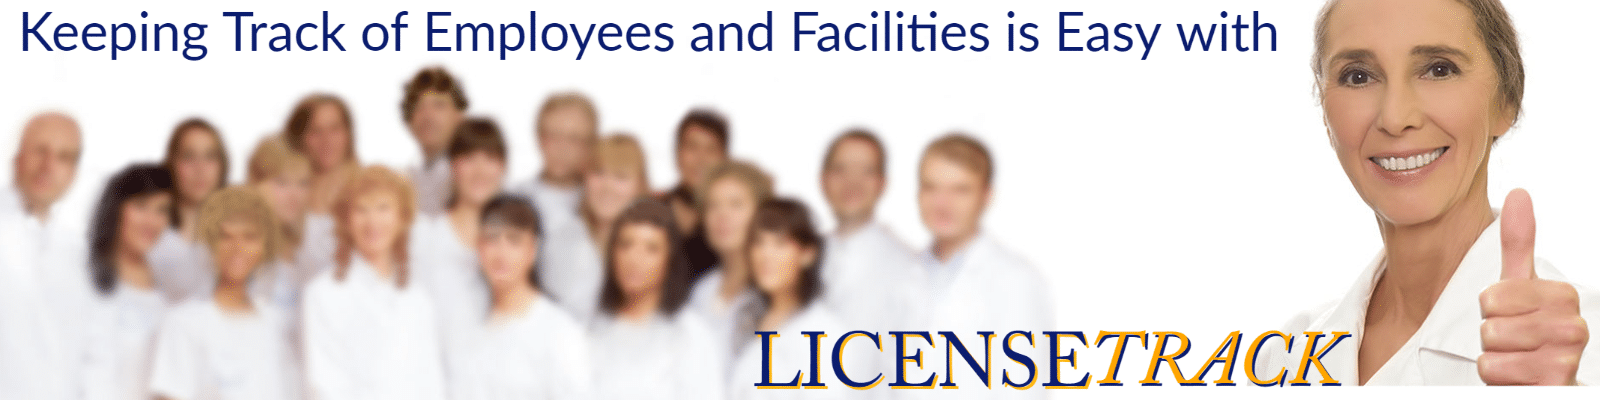 pharmacy employee license and certification tracking program, pharmacy compliance, prs pharmacy services